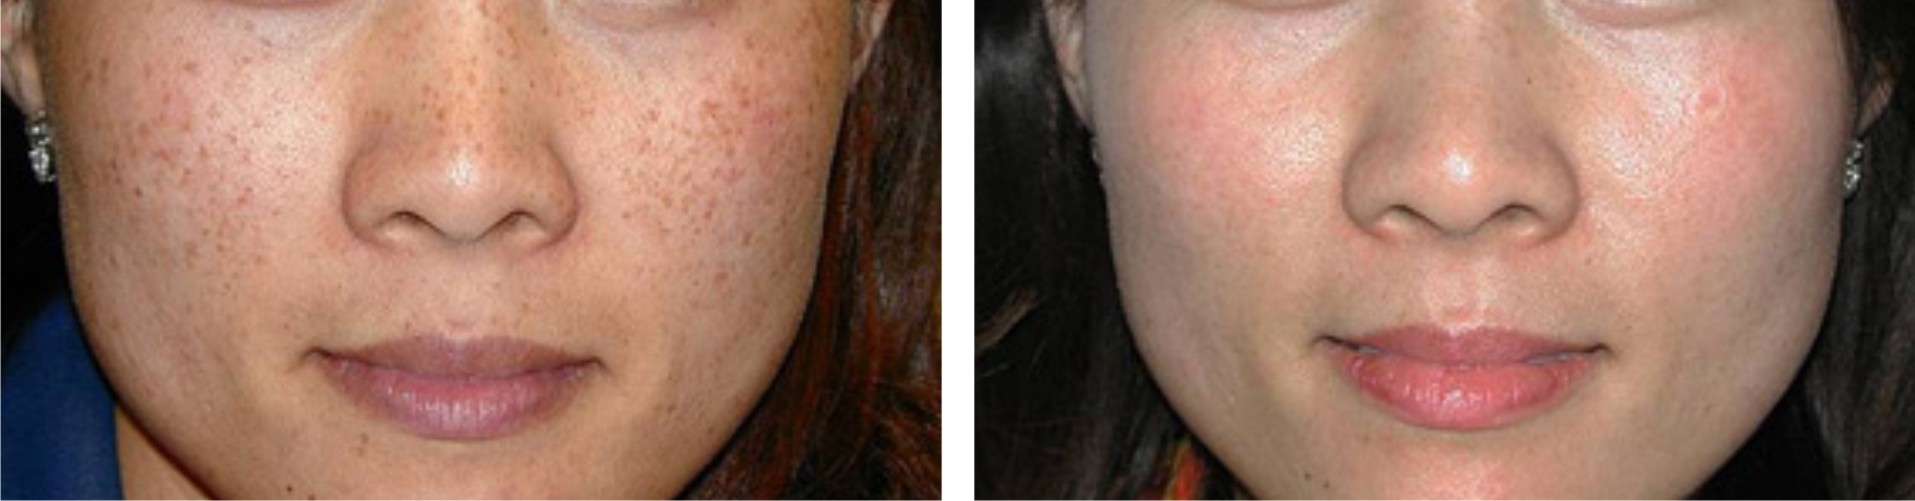 Laser Freckle Removal Image Two